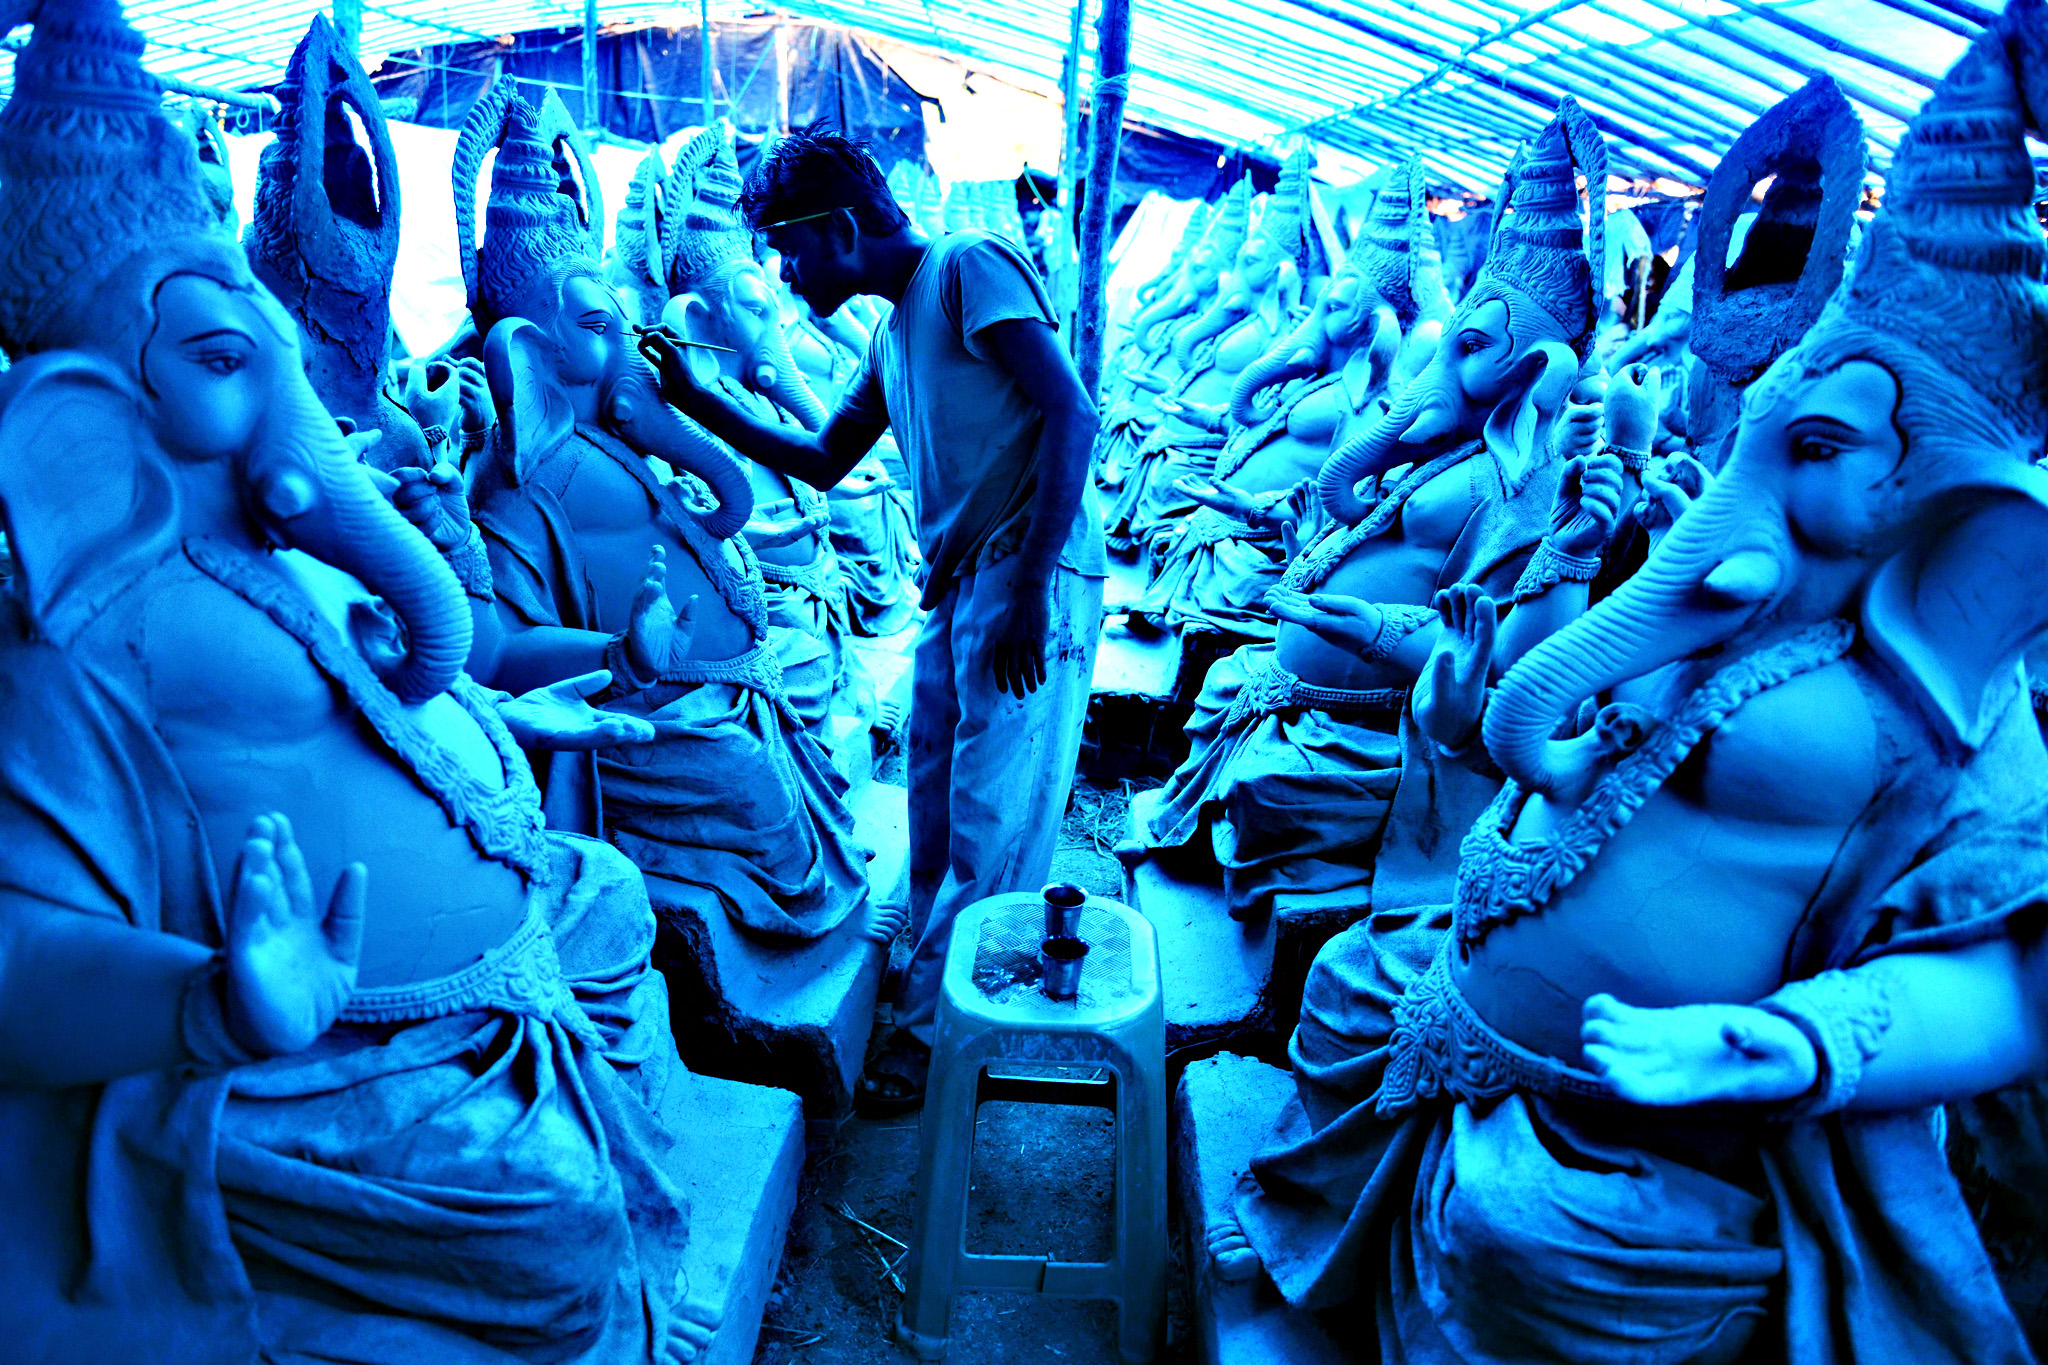 An Indian artist works on eco-friendly figures of Hindu God Lord Ganesh made with mud, jute and bamboo at a blue tarp-covered workshop on the outskirts of Hyderabad on Tuesday.  The statues of eco-friendly clay Ganesh idols made with mud, jute and bamboo will reduce pollution during the Ganesh immersion